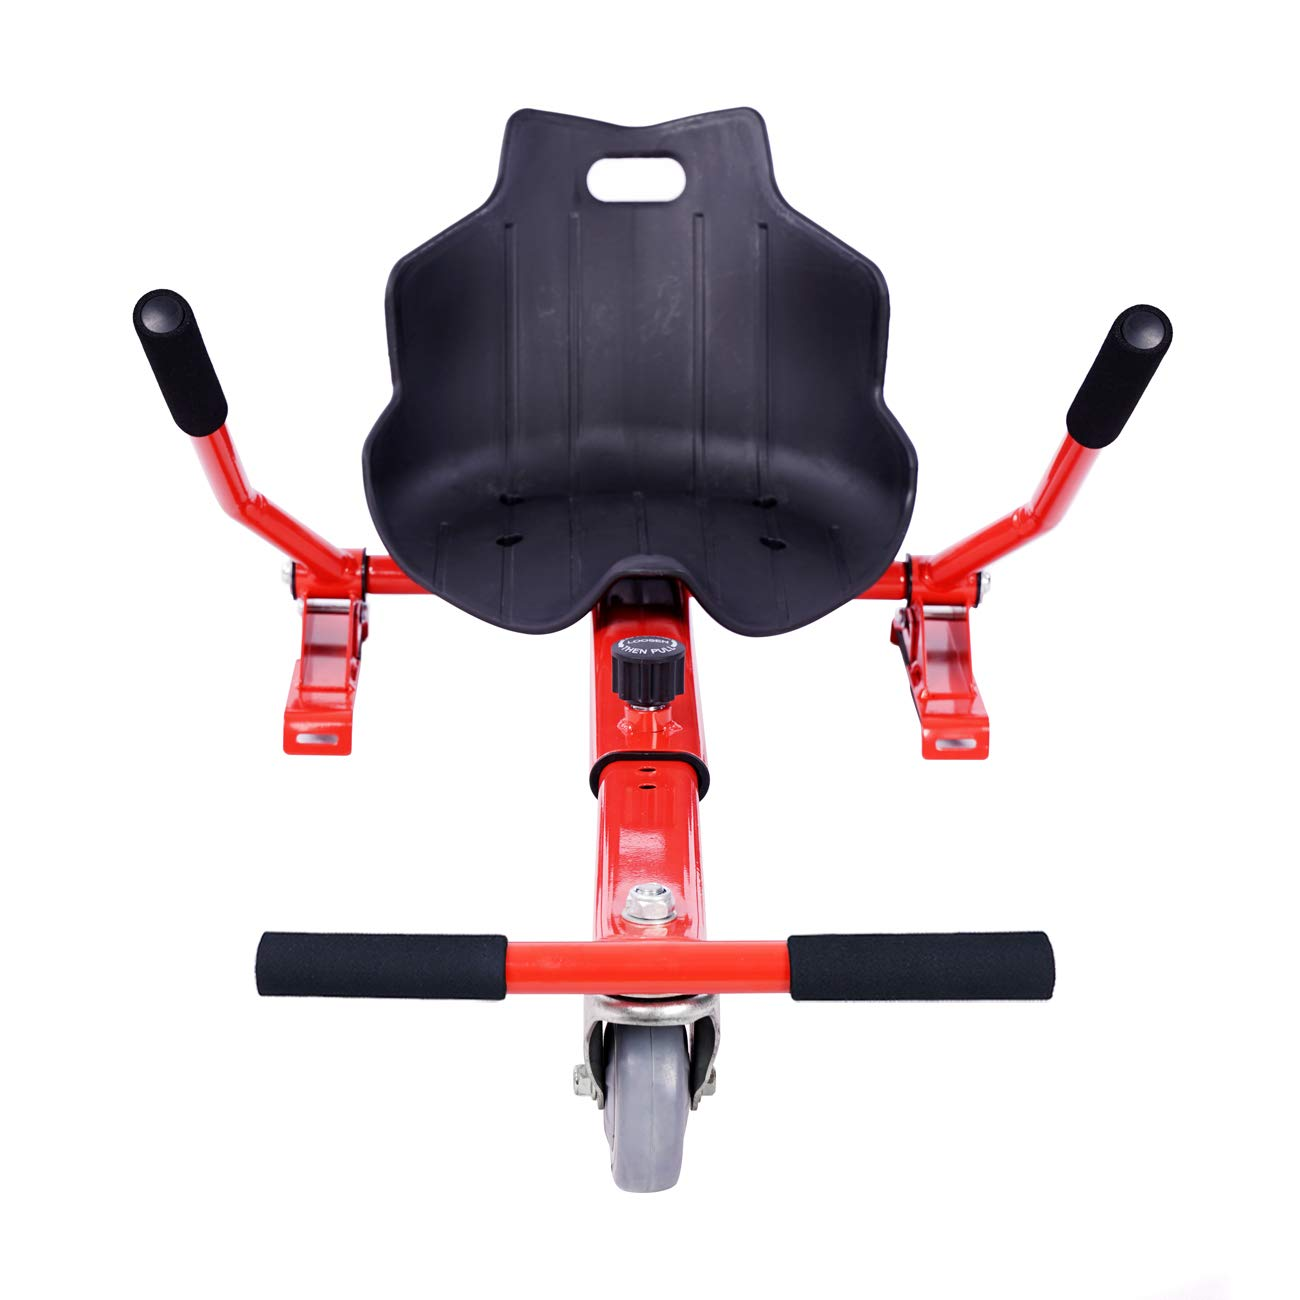 ULIKEIT Hoverboard Seat Attachment Go Kart Safty Scooter Accessories for Kids Fits 6.5''/8''/10'' Hoverboards (Red)